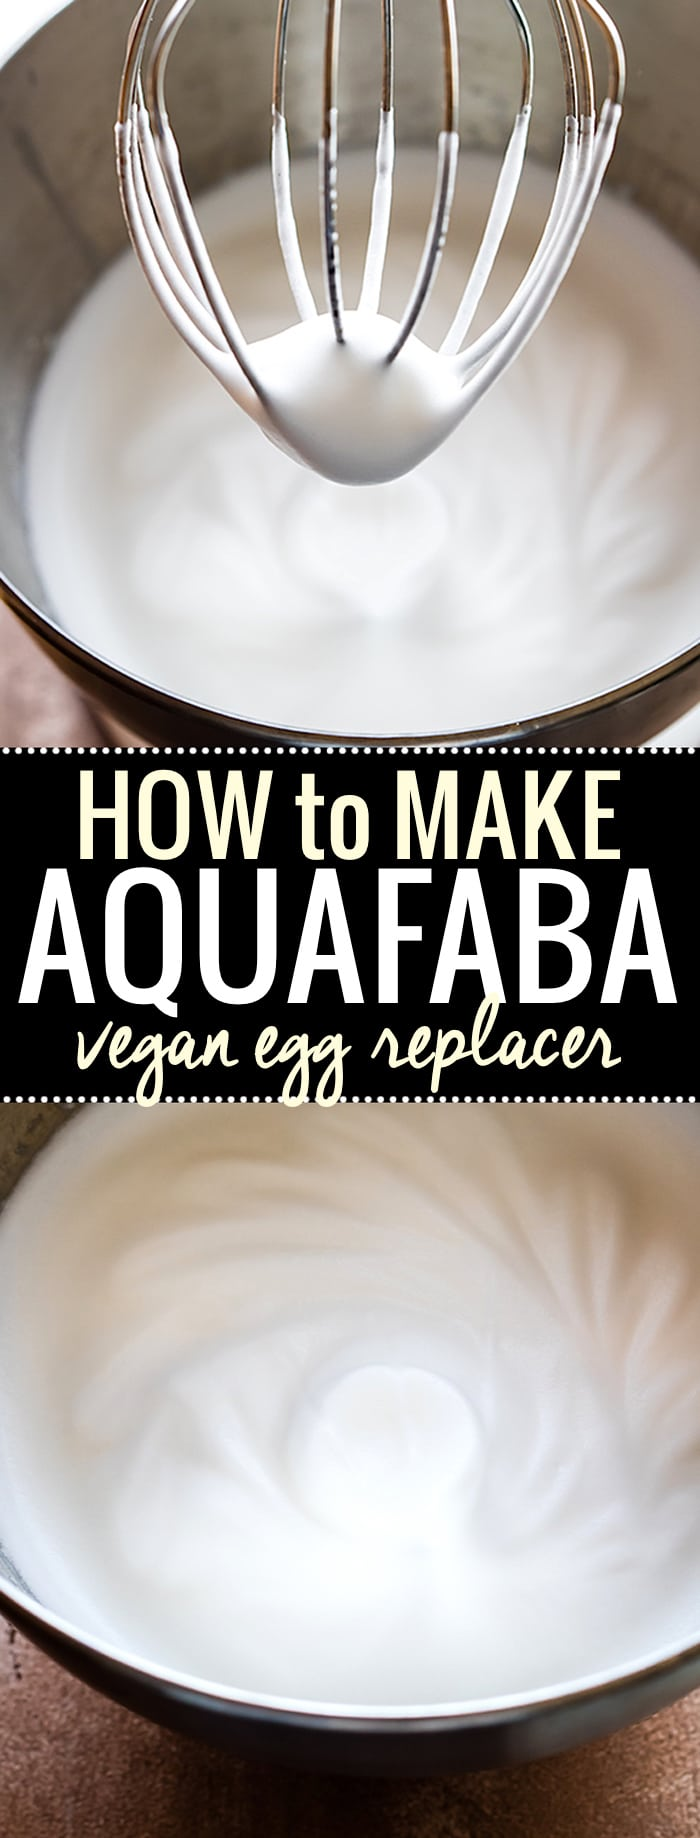 Aquafaba is the new trend in Vegan baking and Egg Free baking. It's easy, healthy, and versatile! You can whip it up to use in place of egg whites, or just use the juice (Chickpea brine) for whole egg baking. Learn How to make Aquafaba with just a can of chickpeas in this video tutorial. More info and Tips on using Aquafaba on https://www.cottercrunch.com